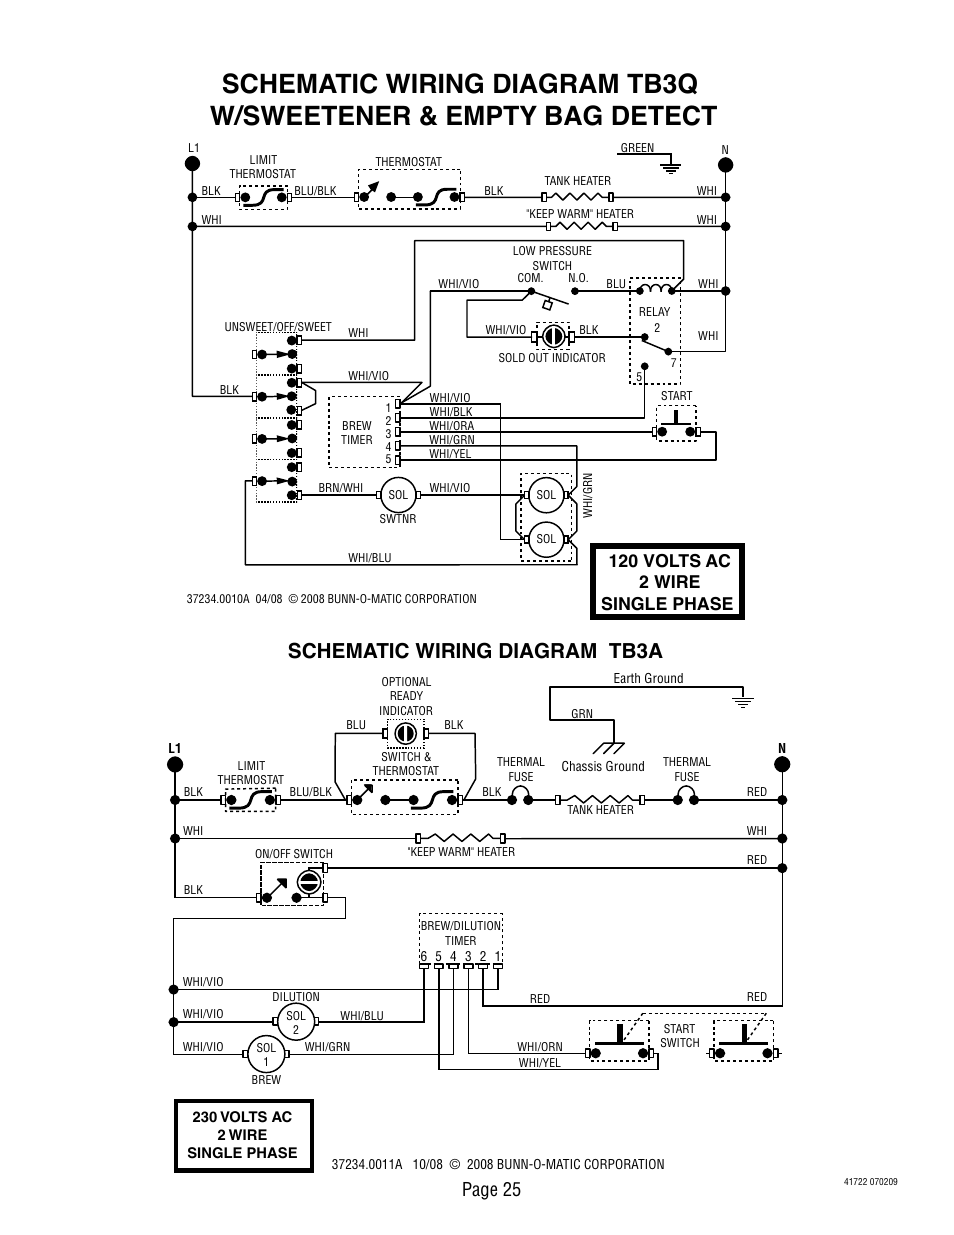 hight resolution of schematic wiring diagram tb3a page 25 120 volts ac 2 wire single phase bunn tb3q lp user manual page 25 27